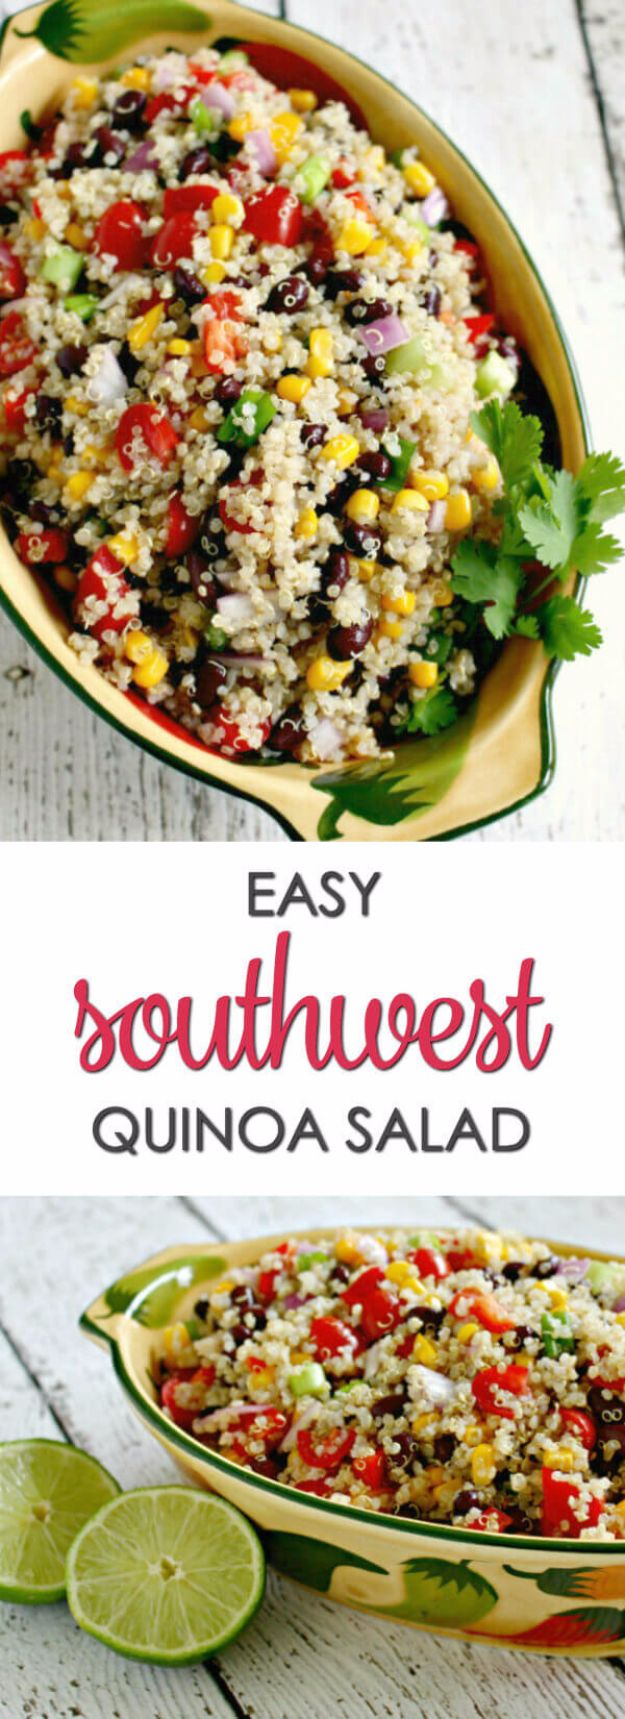 Easy Dinner Ideas for One - Southwest Quinoa Salad - Quick, Fast and Simple Recipes to Make for a Single Person - Freeze and Make Ahead Dinner Recipe Tips for Best Weeknight Dinners for Singles - Chicken, Fish, Vegetable, No Bake and Vegetarian Options - Crockpot, Microwave, Healthy, Lowfat Options